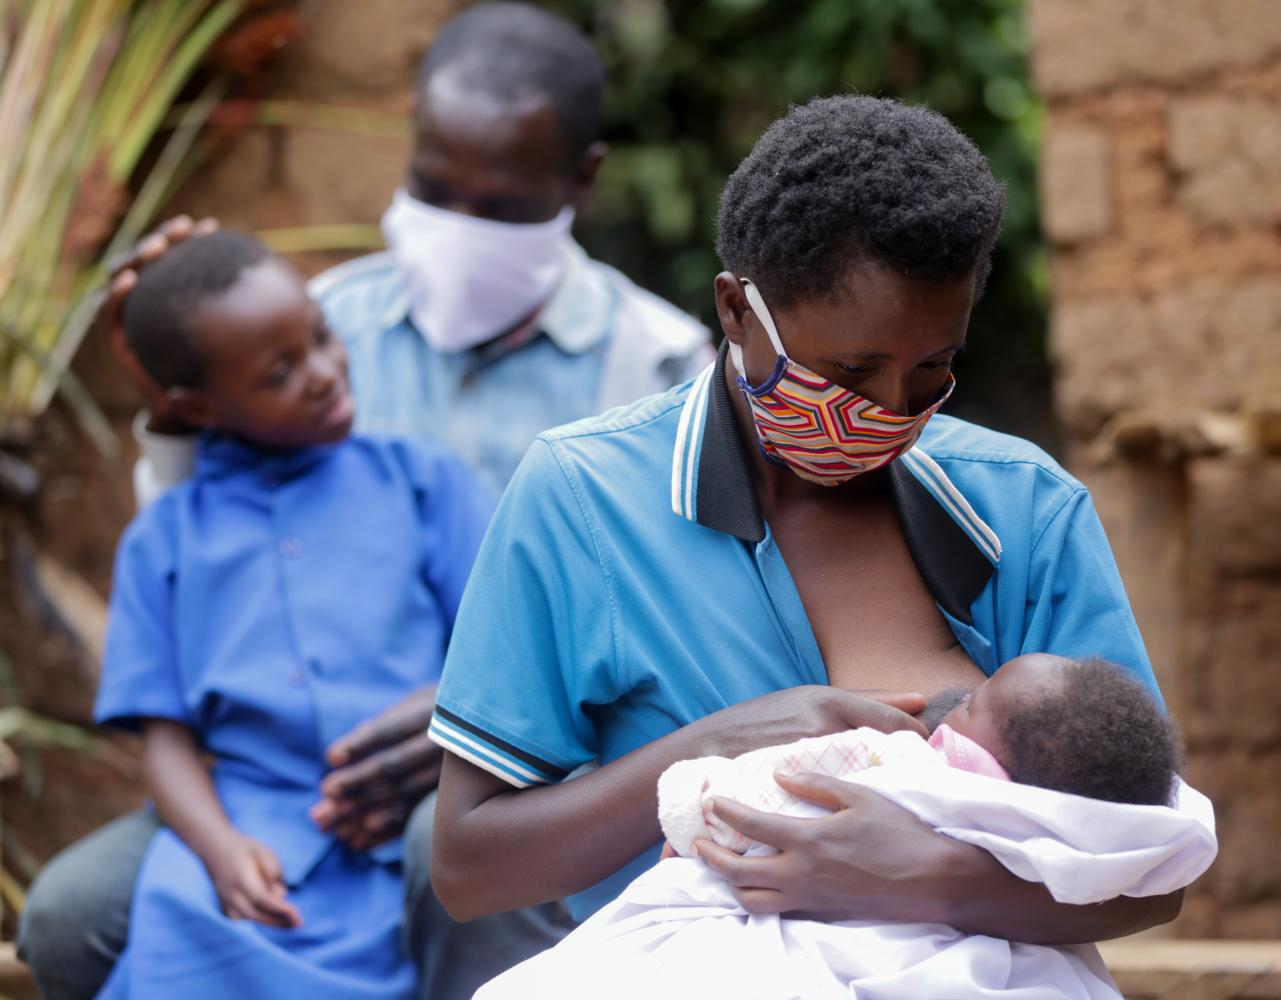 Breastfeeding safe to provide amid the pandemic